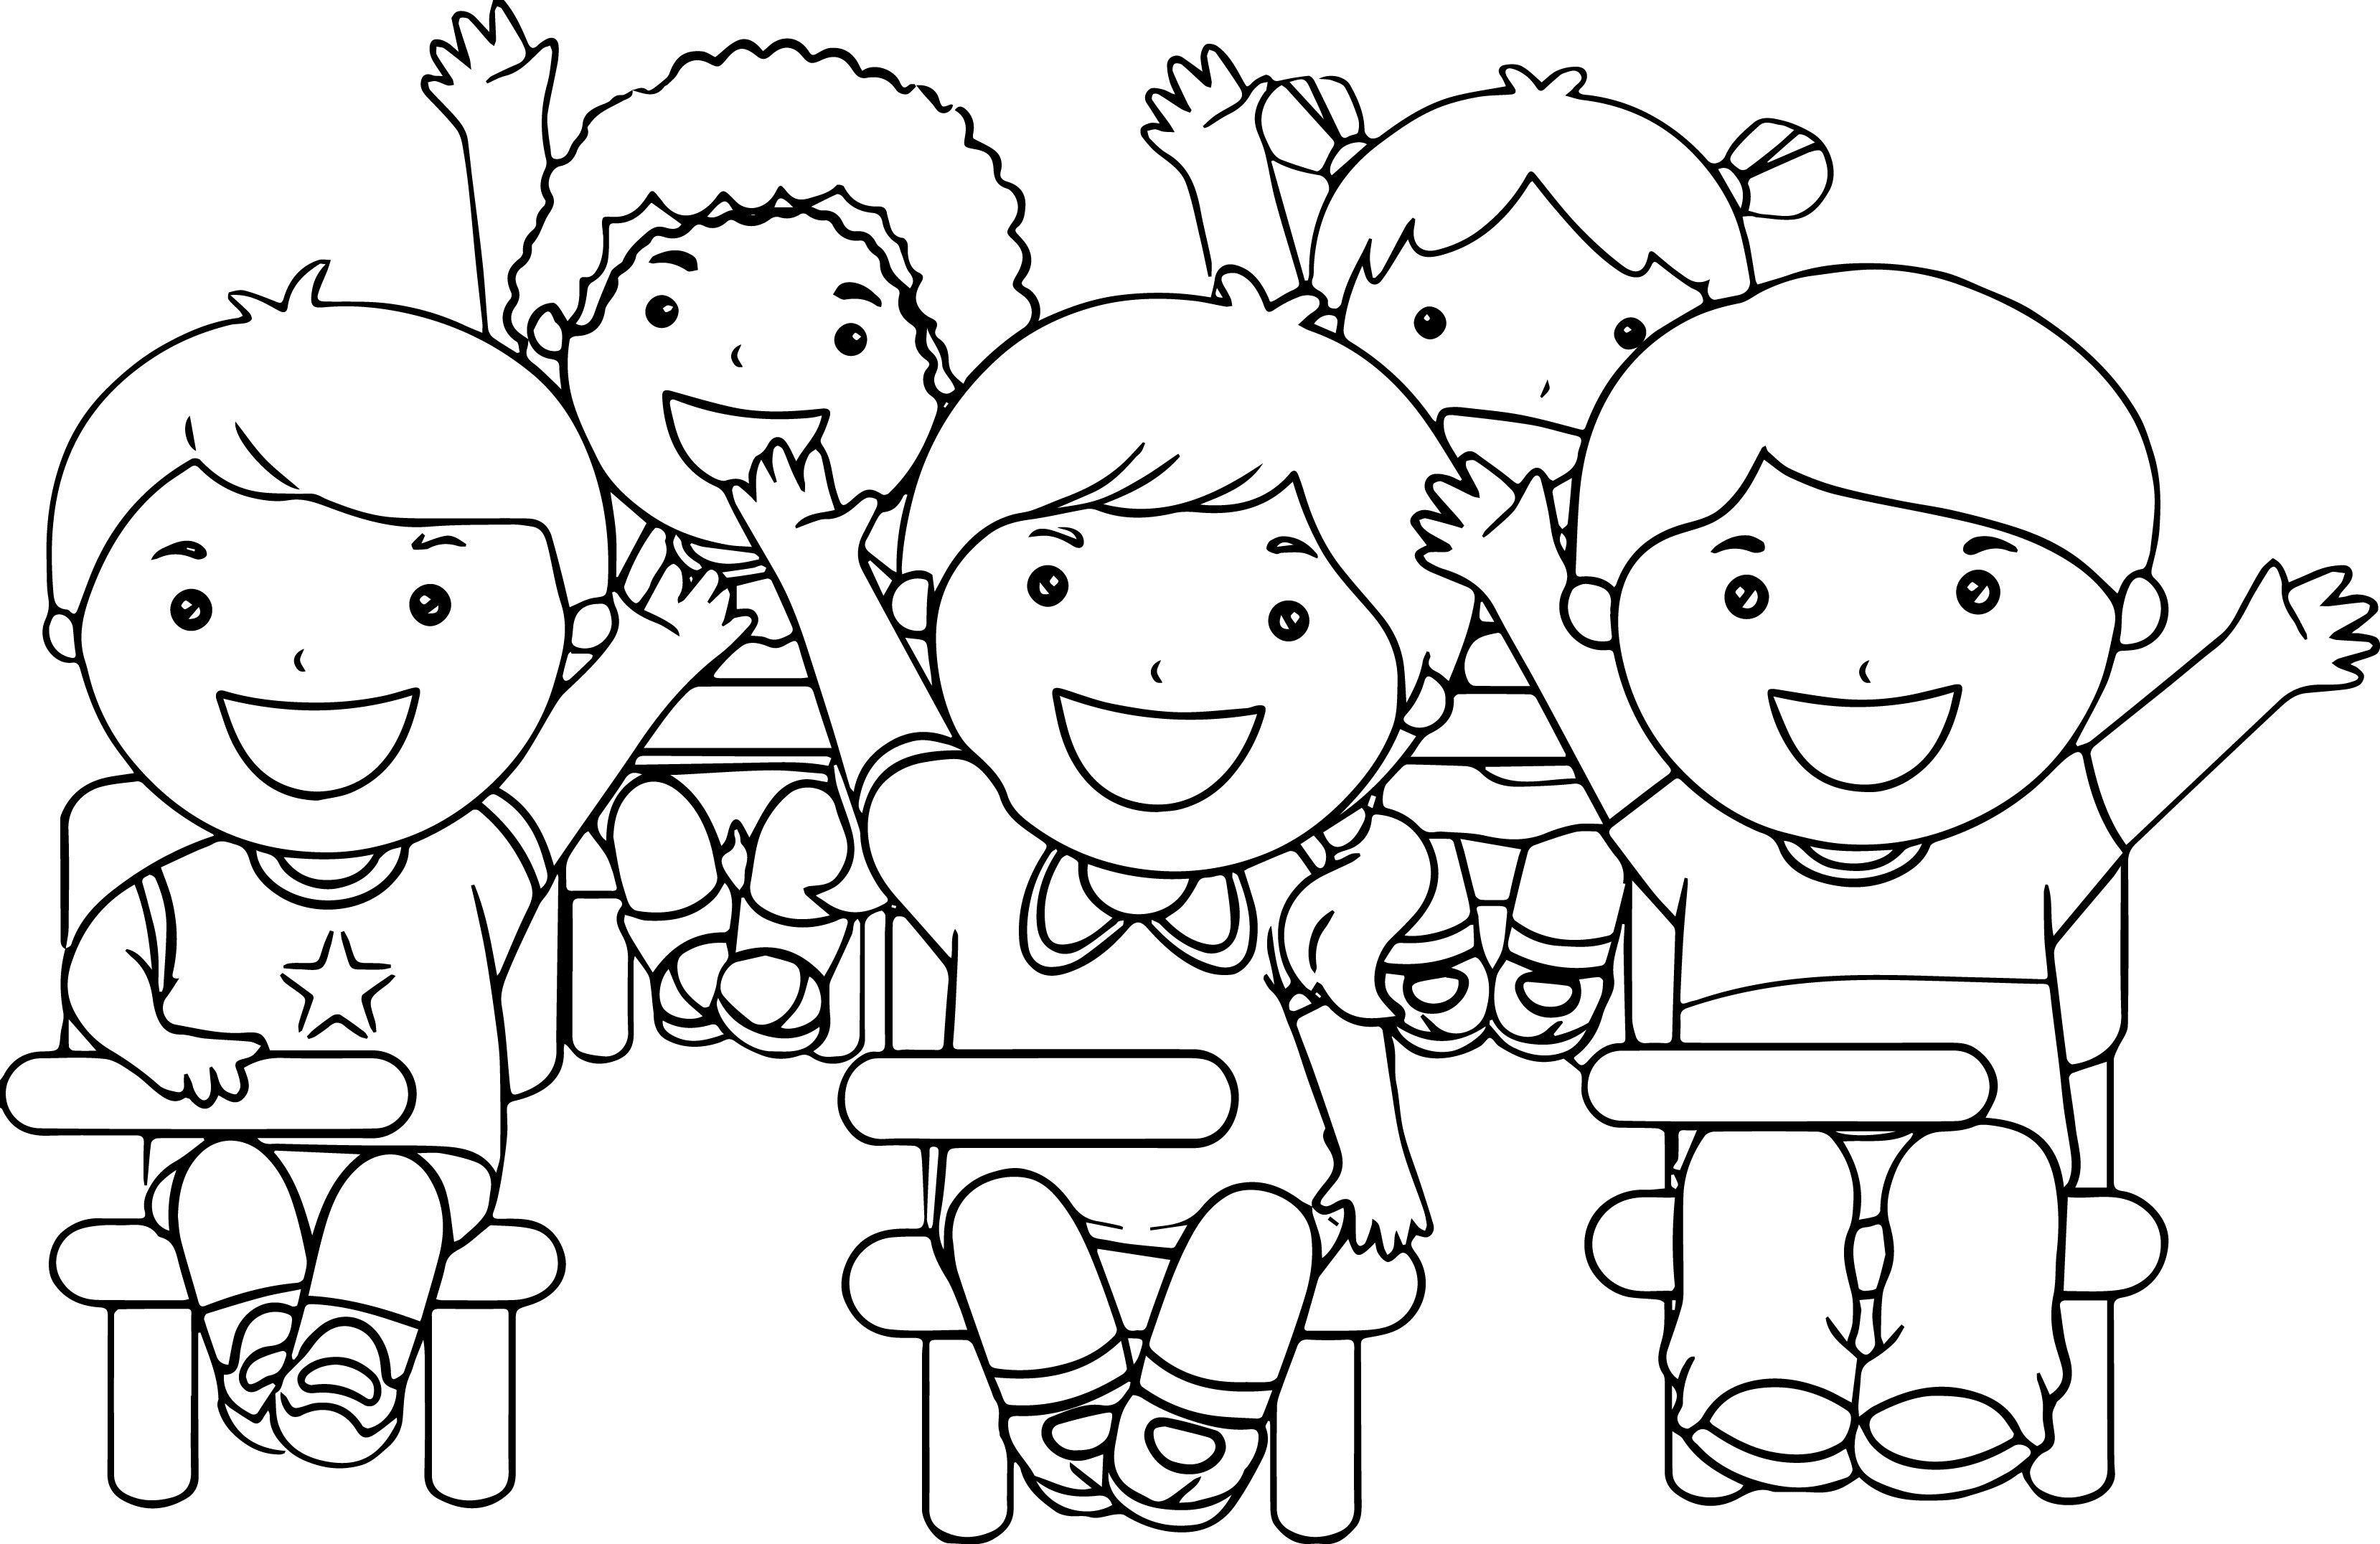 Coloring in pages for toddlers - Best Coloring Pages For Toddlers Free Image